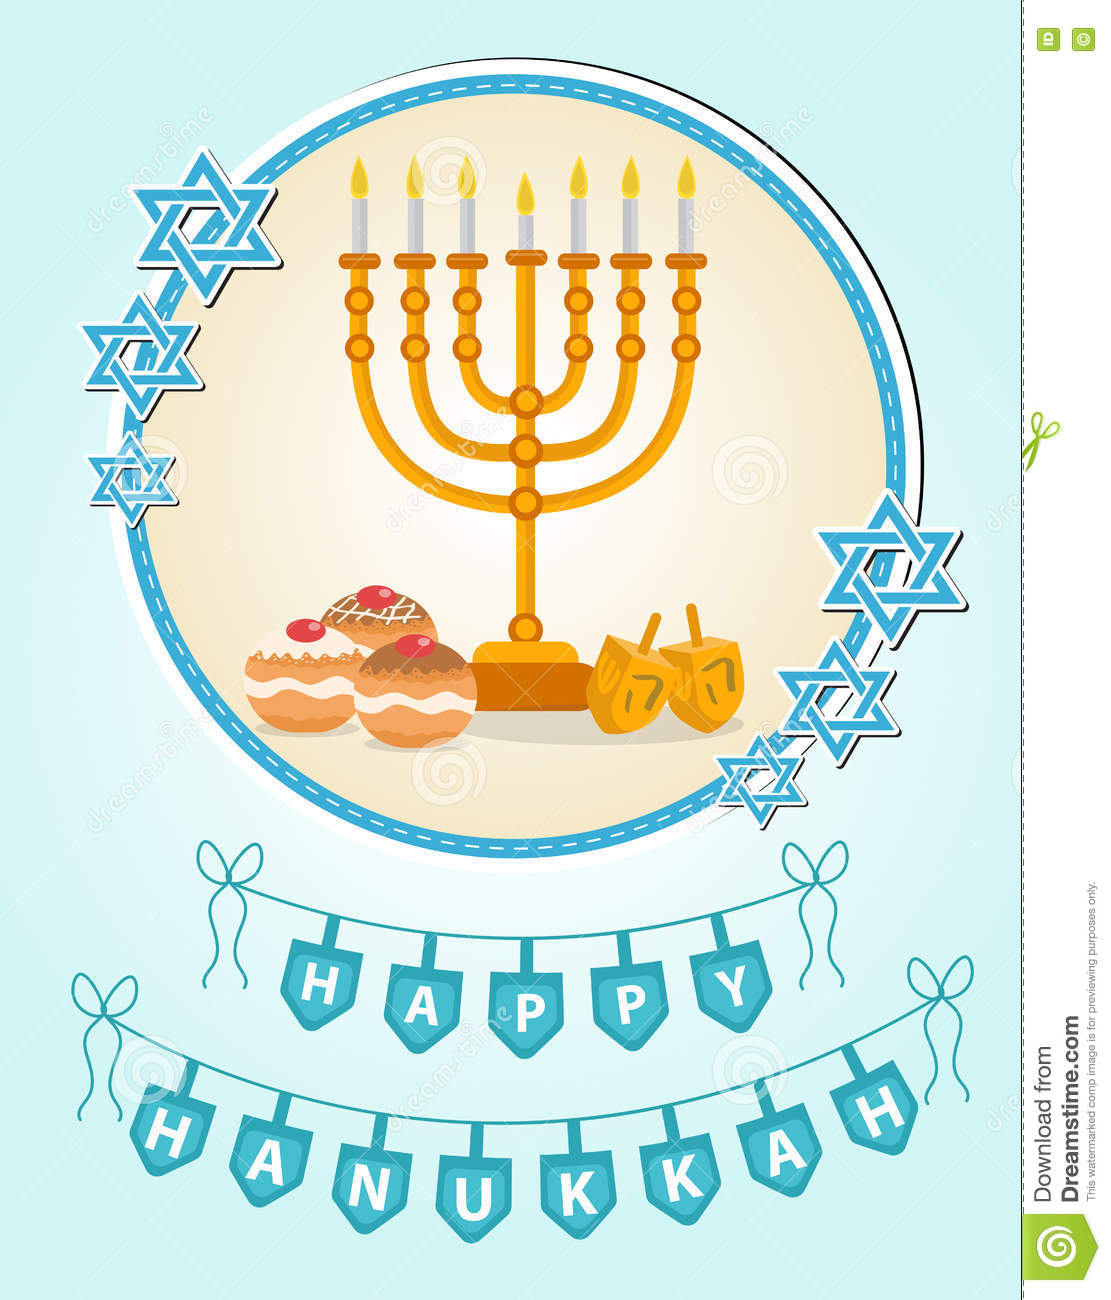 Happy hanukkah greeting card invitation poster hanukkah jewish happy hanukkah greeting card invitation poster hanukkah jewish festival of lights feast of dedication hanukkah greeting card candle background kristyandbryce Choice Image